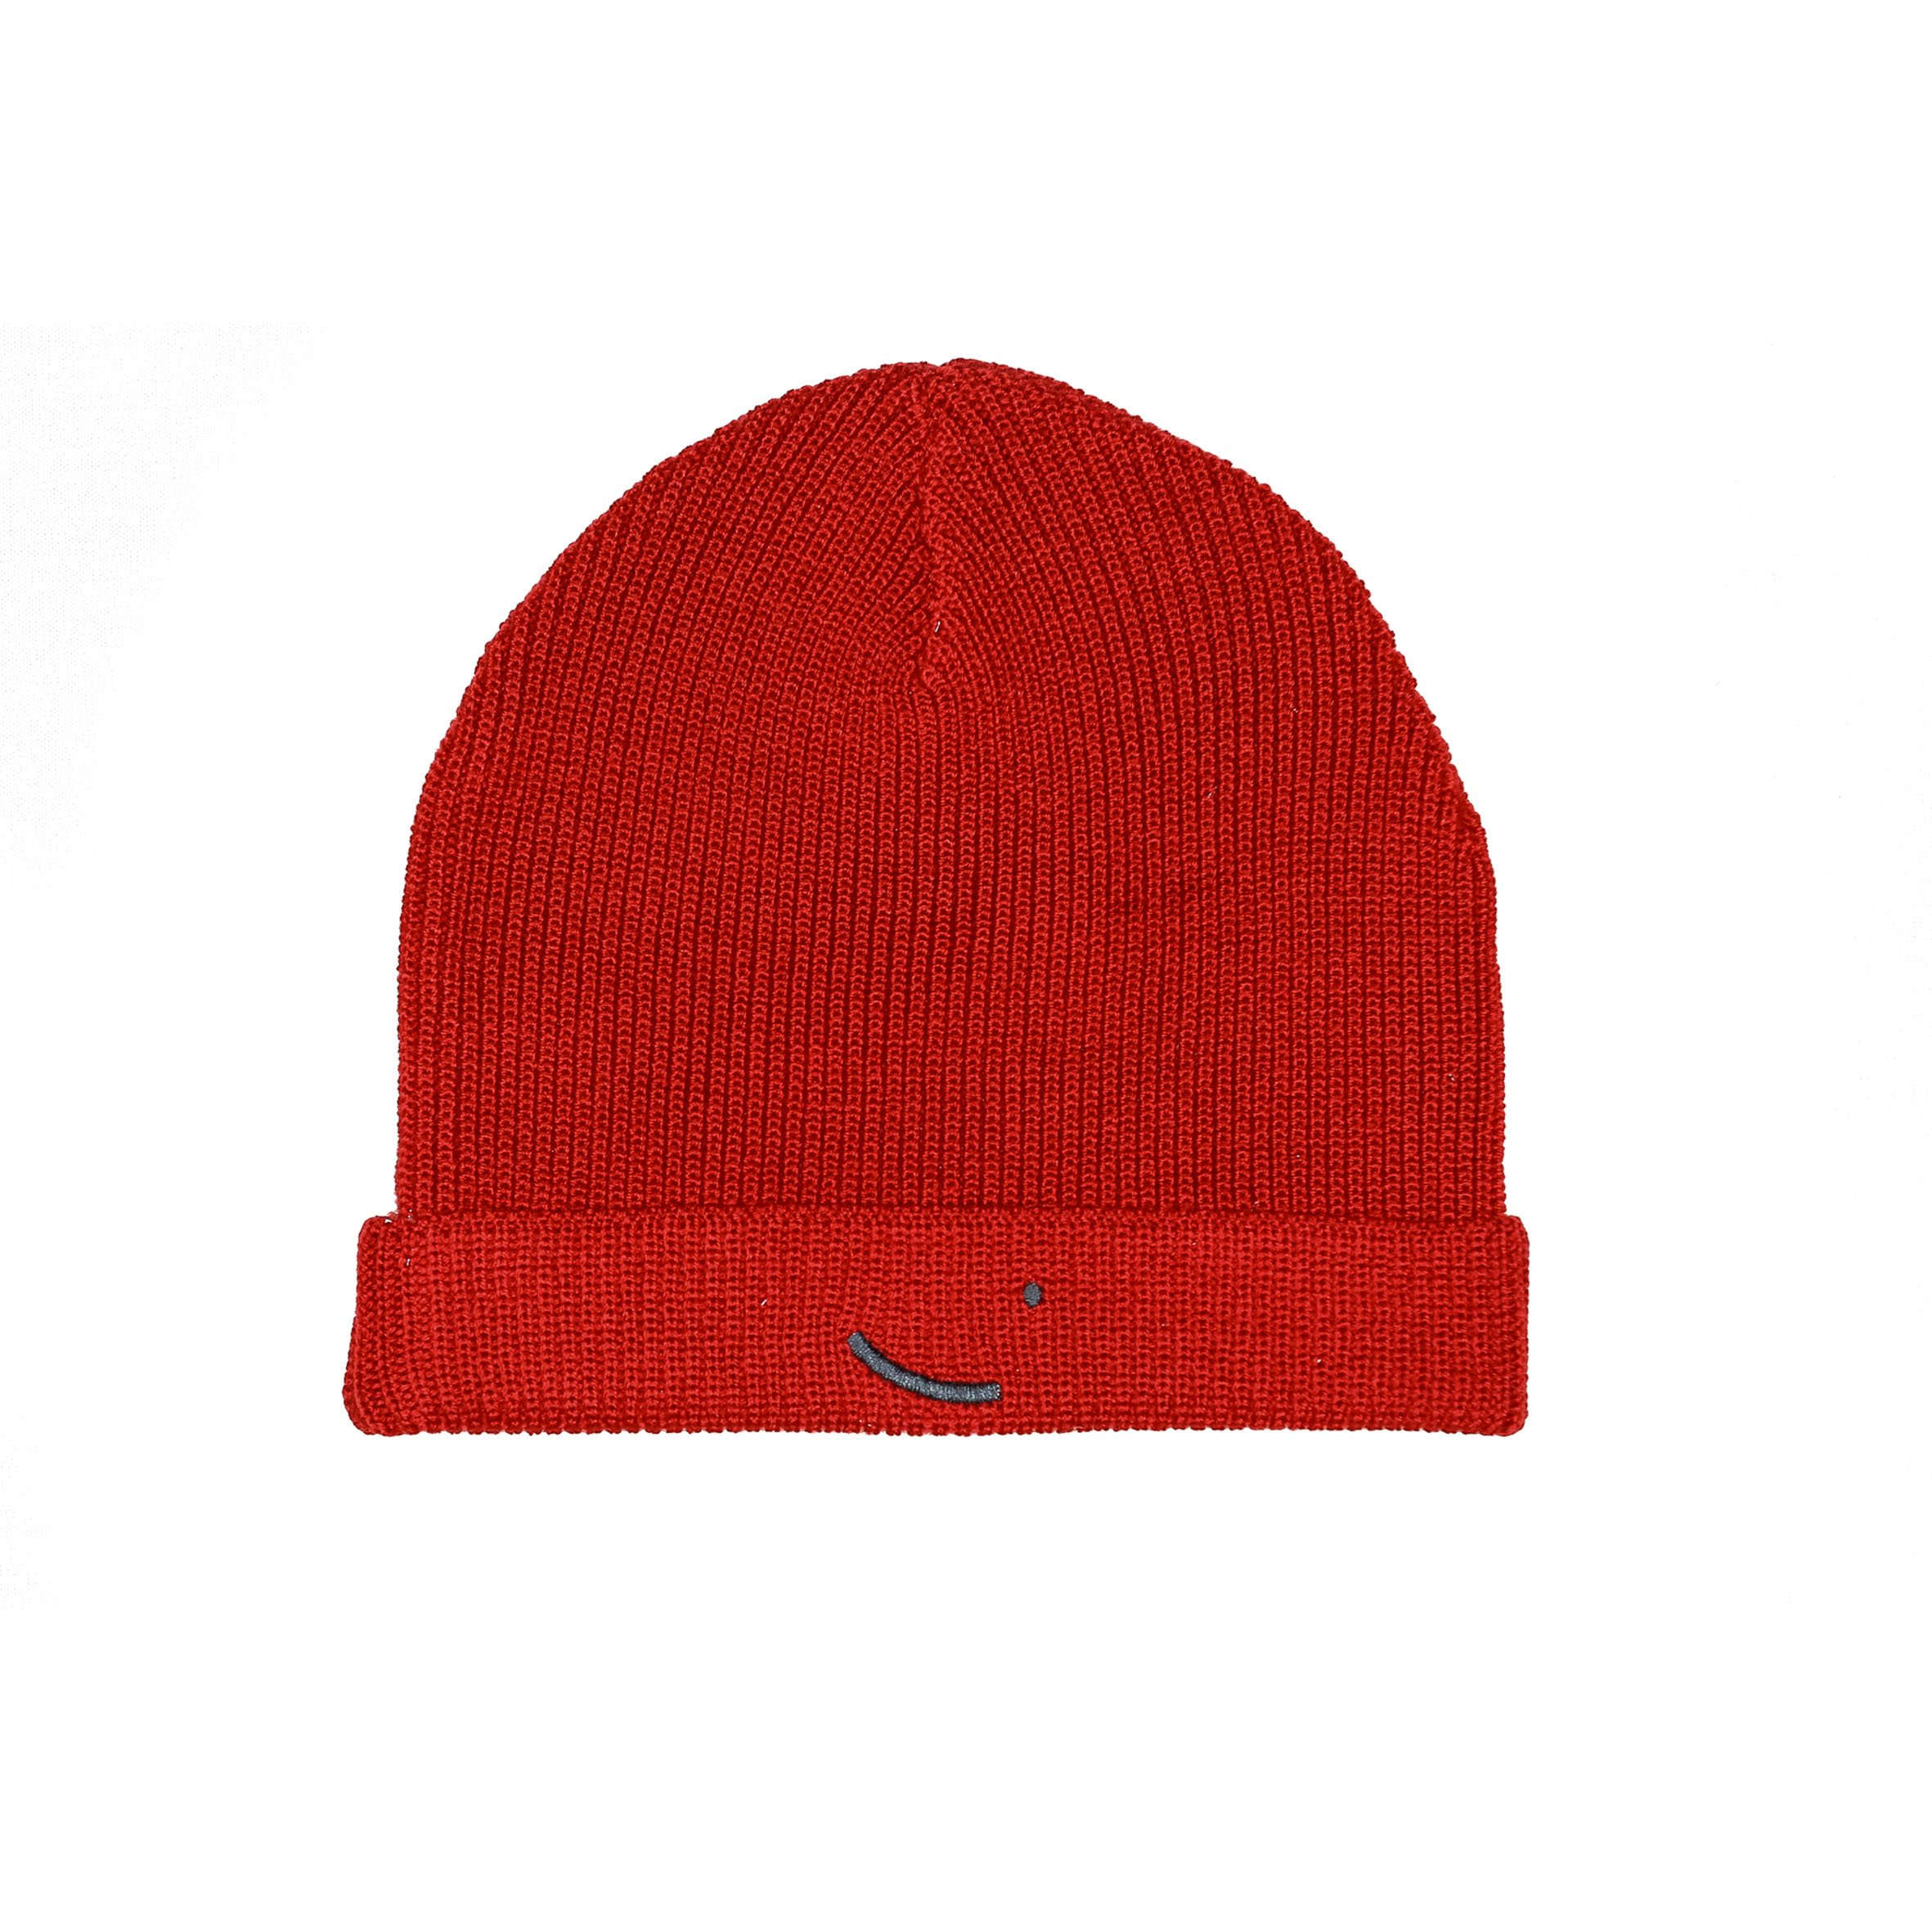 Beanie Cairo red from hatsup